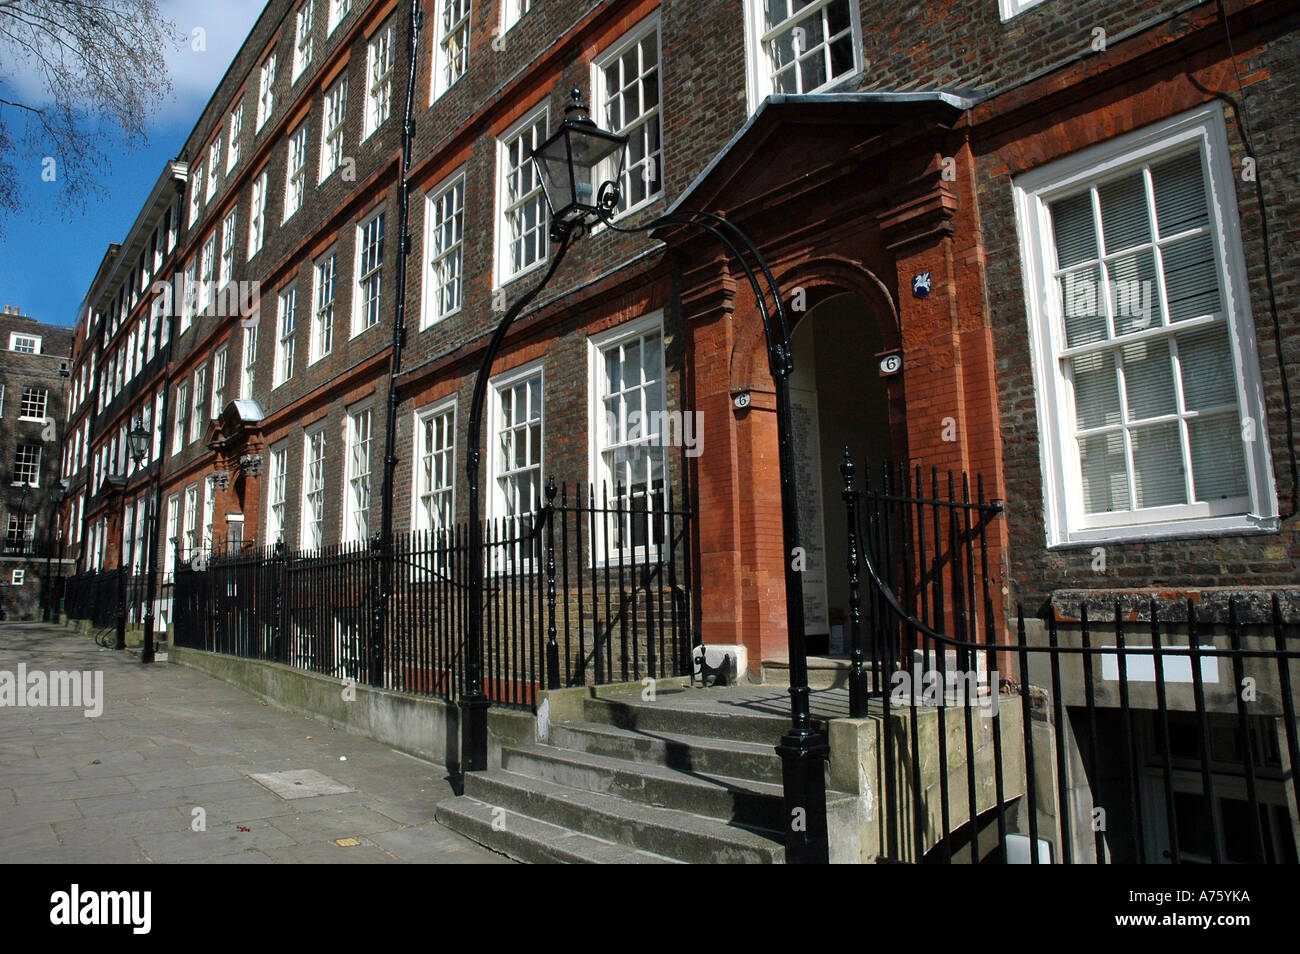 Typical Legal Office  Inns of Court  off Fleet Street London England - Stock Image